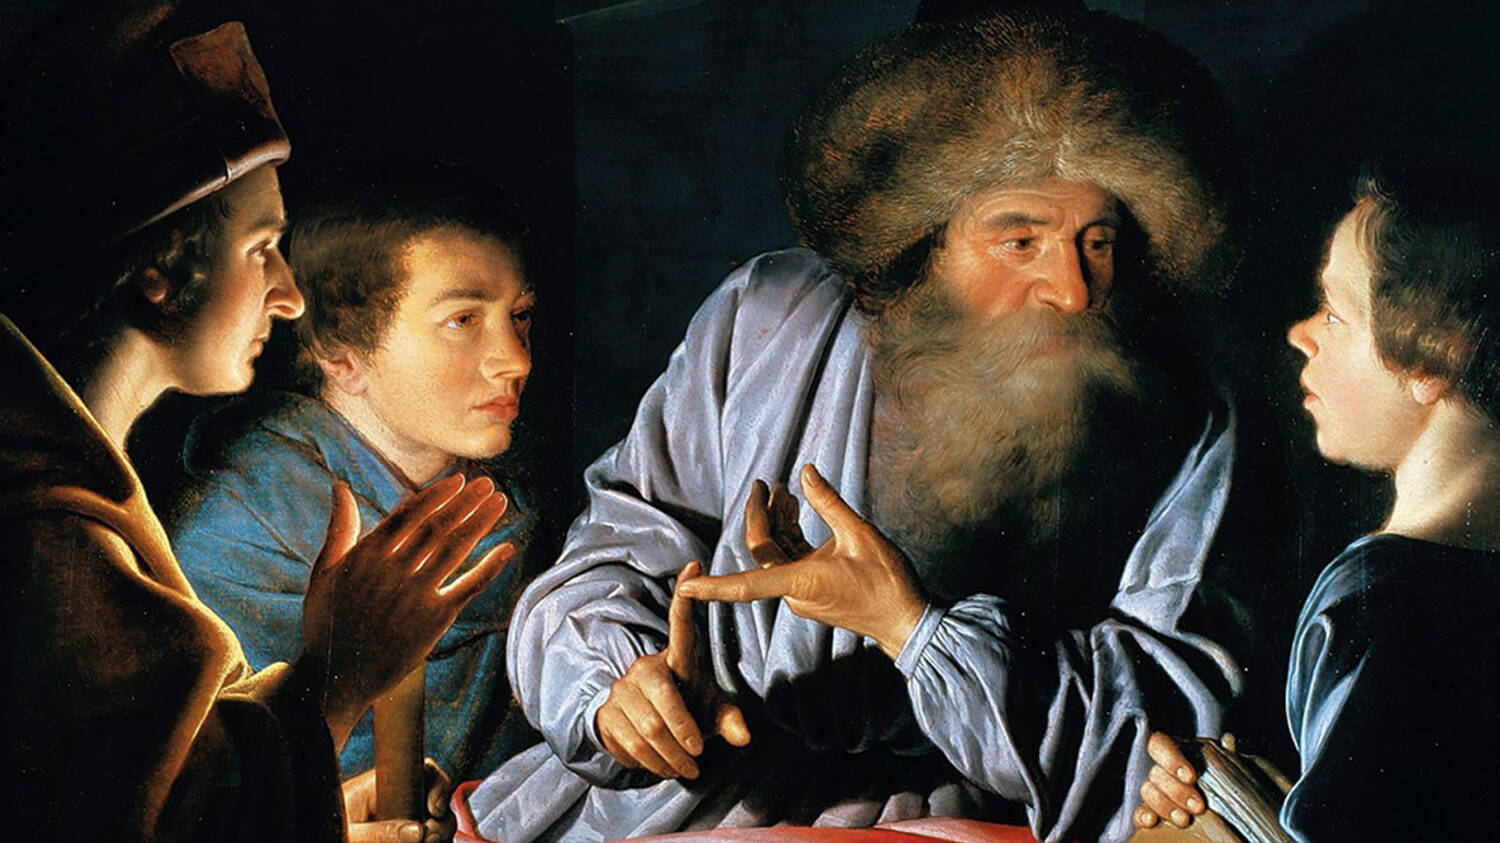 A close-up of an old painting, showing an older bearded man sitting at a table with younger boy pupils sitting around him. They are listening as he talks.